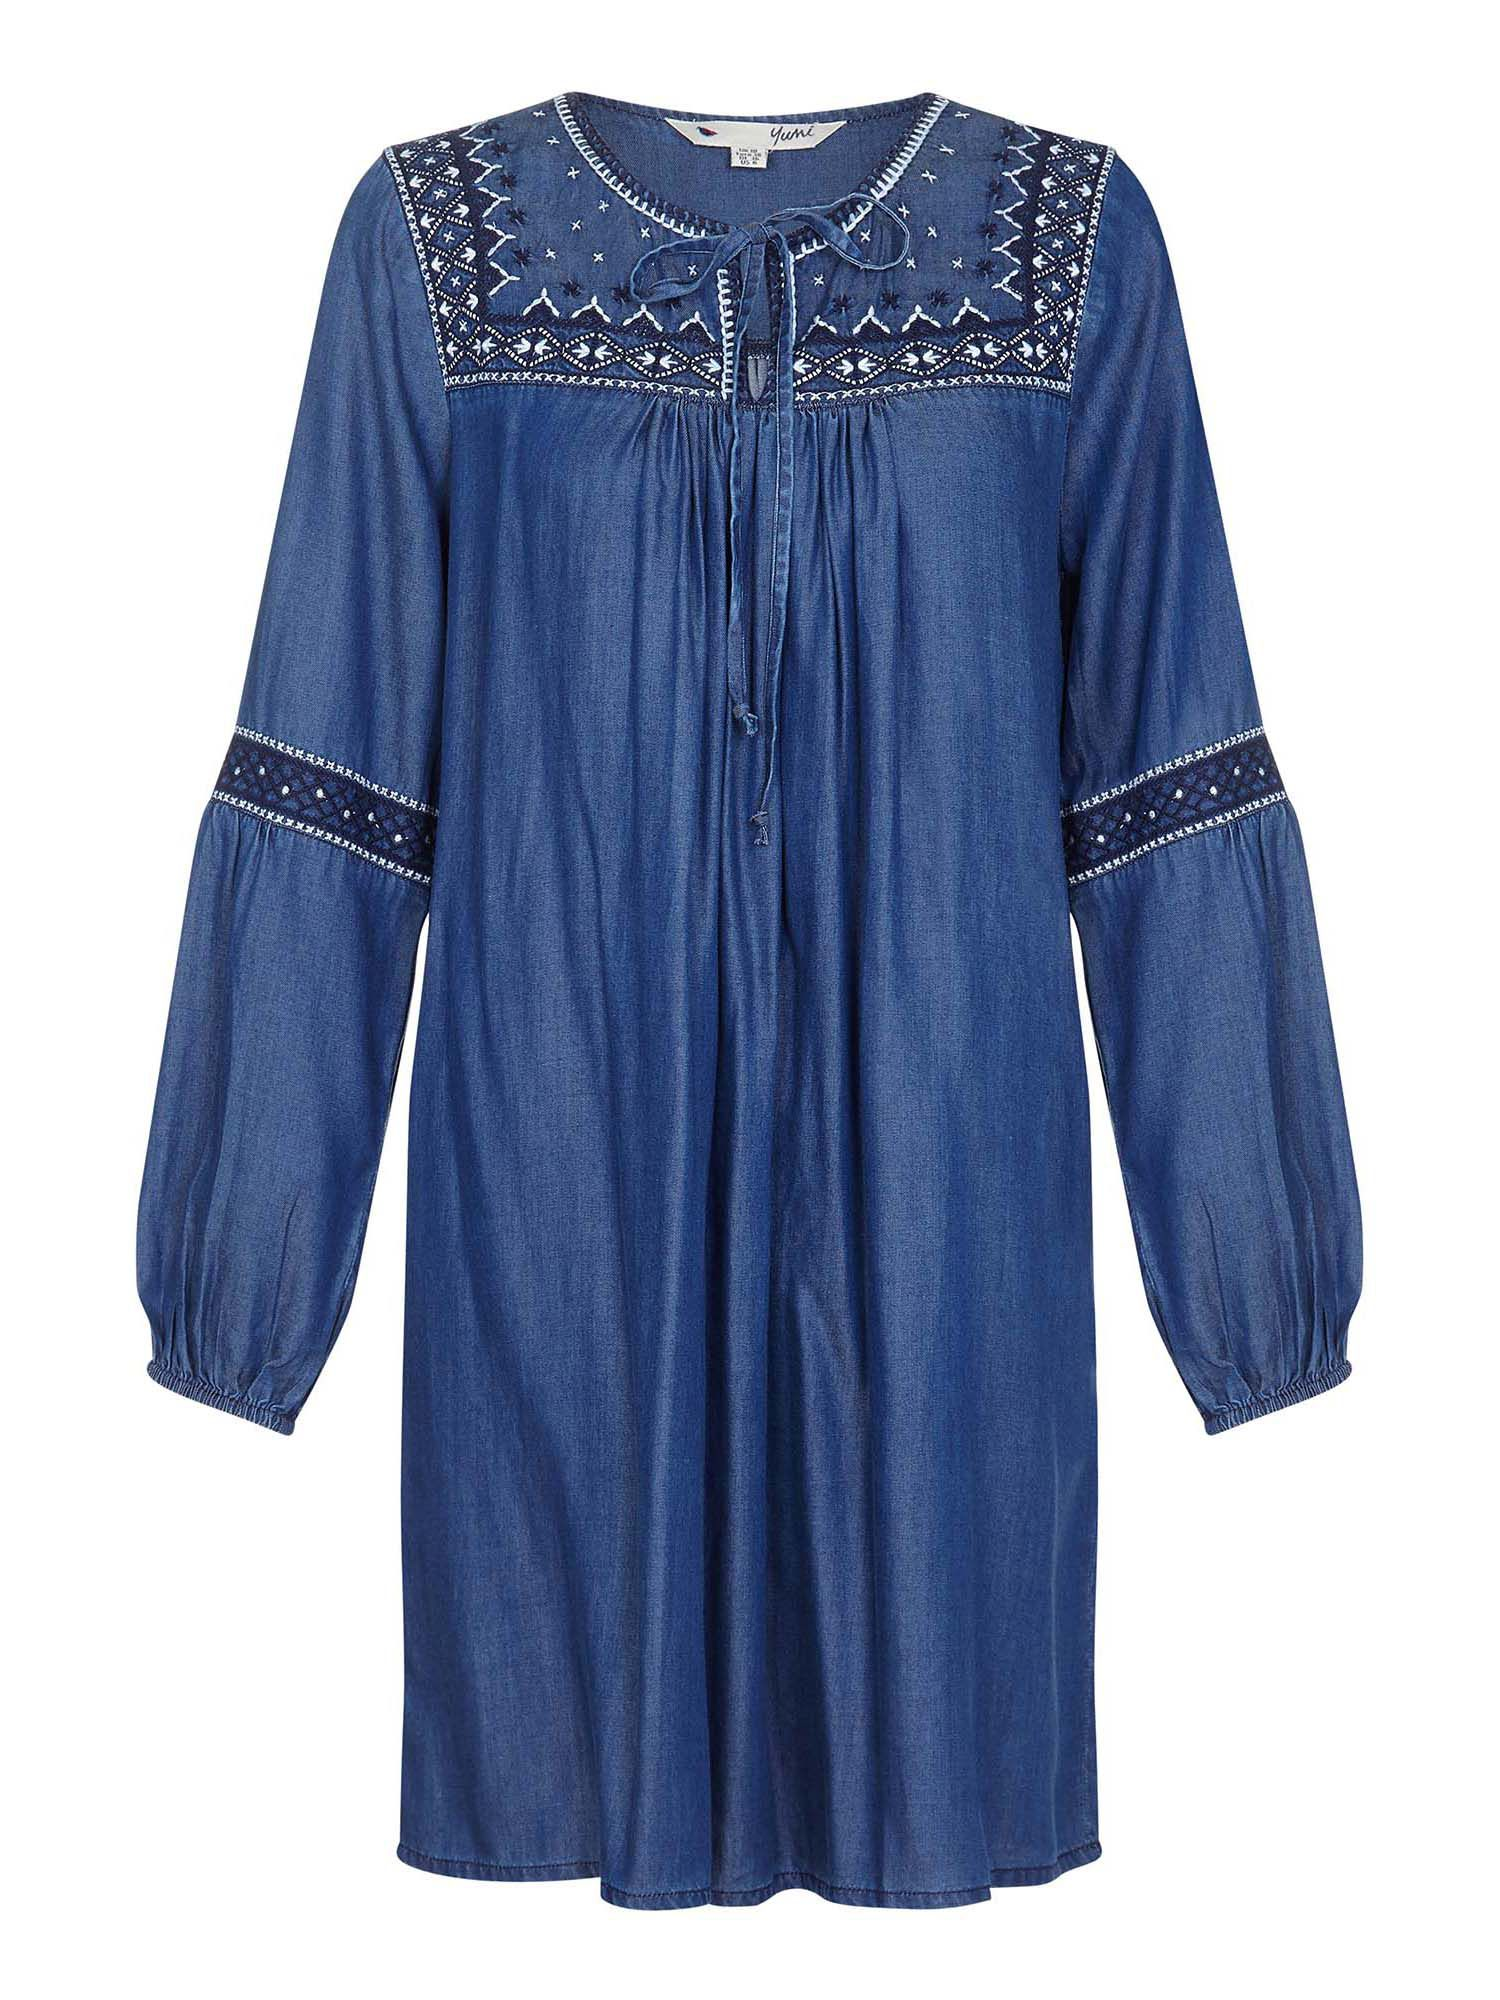 Yumi Curves Embroidered Chambray Tunic Dress, Blue